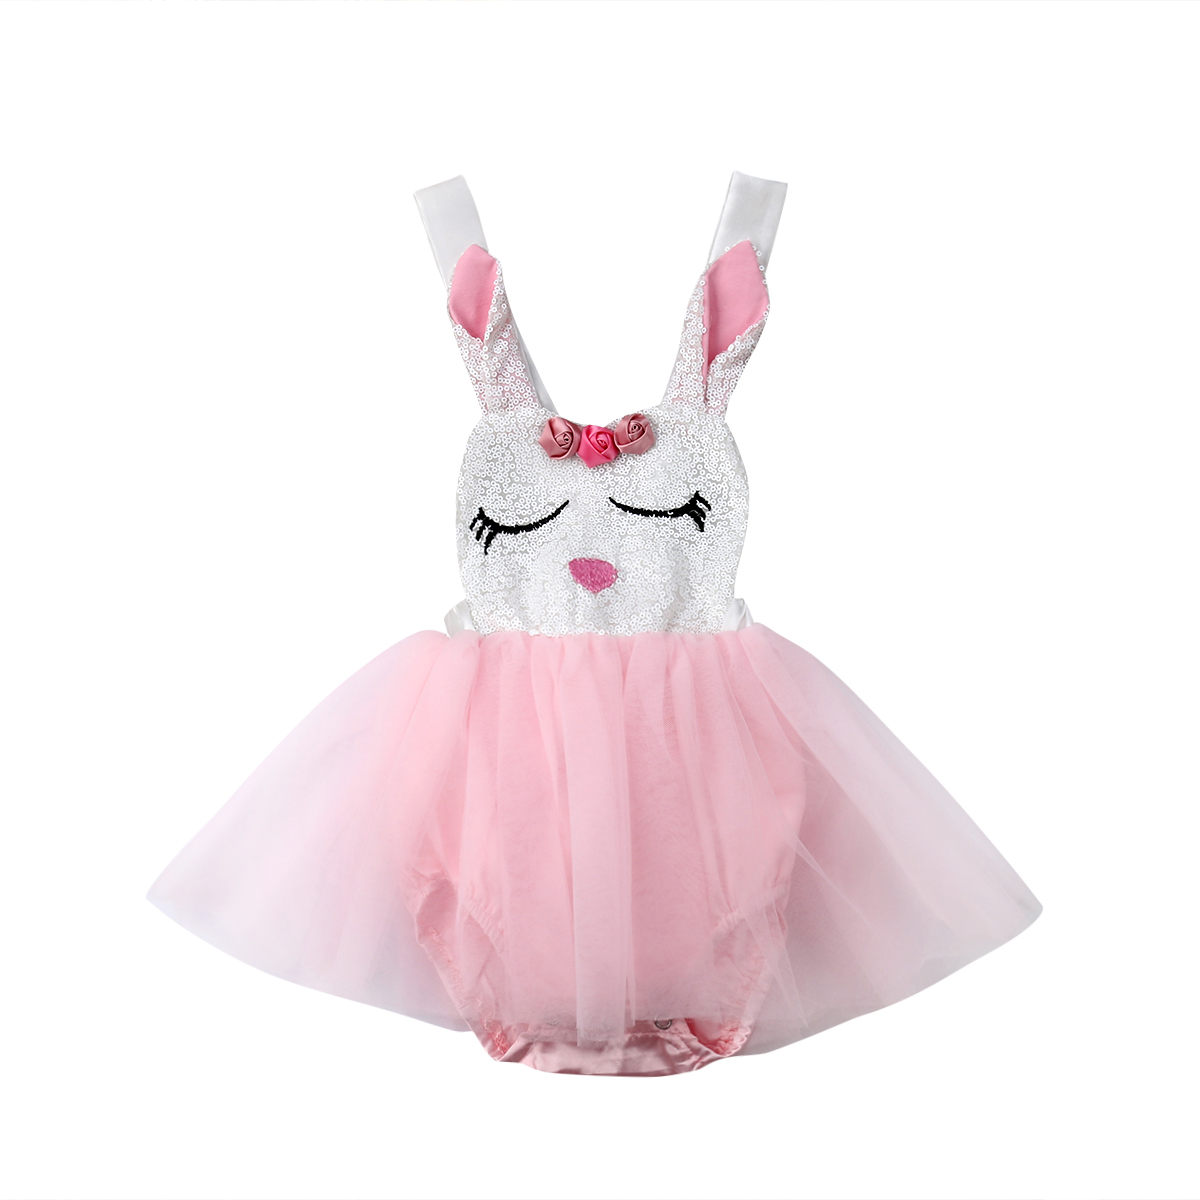 9339ed072 Cotton Baby Girls Clothes 1 Year 1st Easter Dress Party Dresses for ...